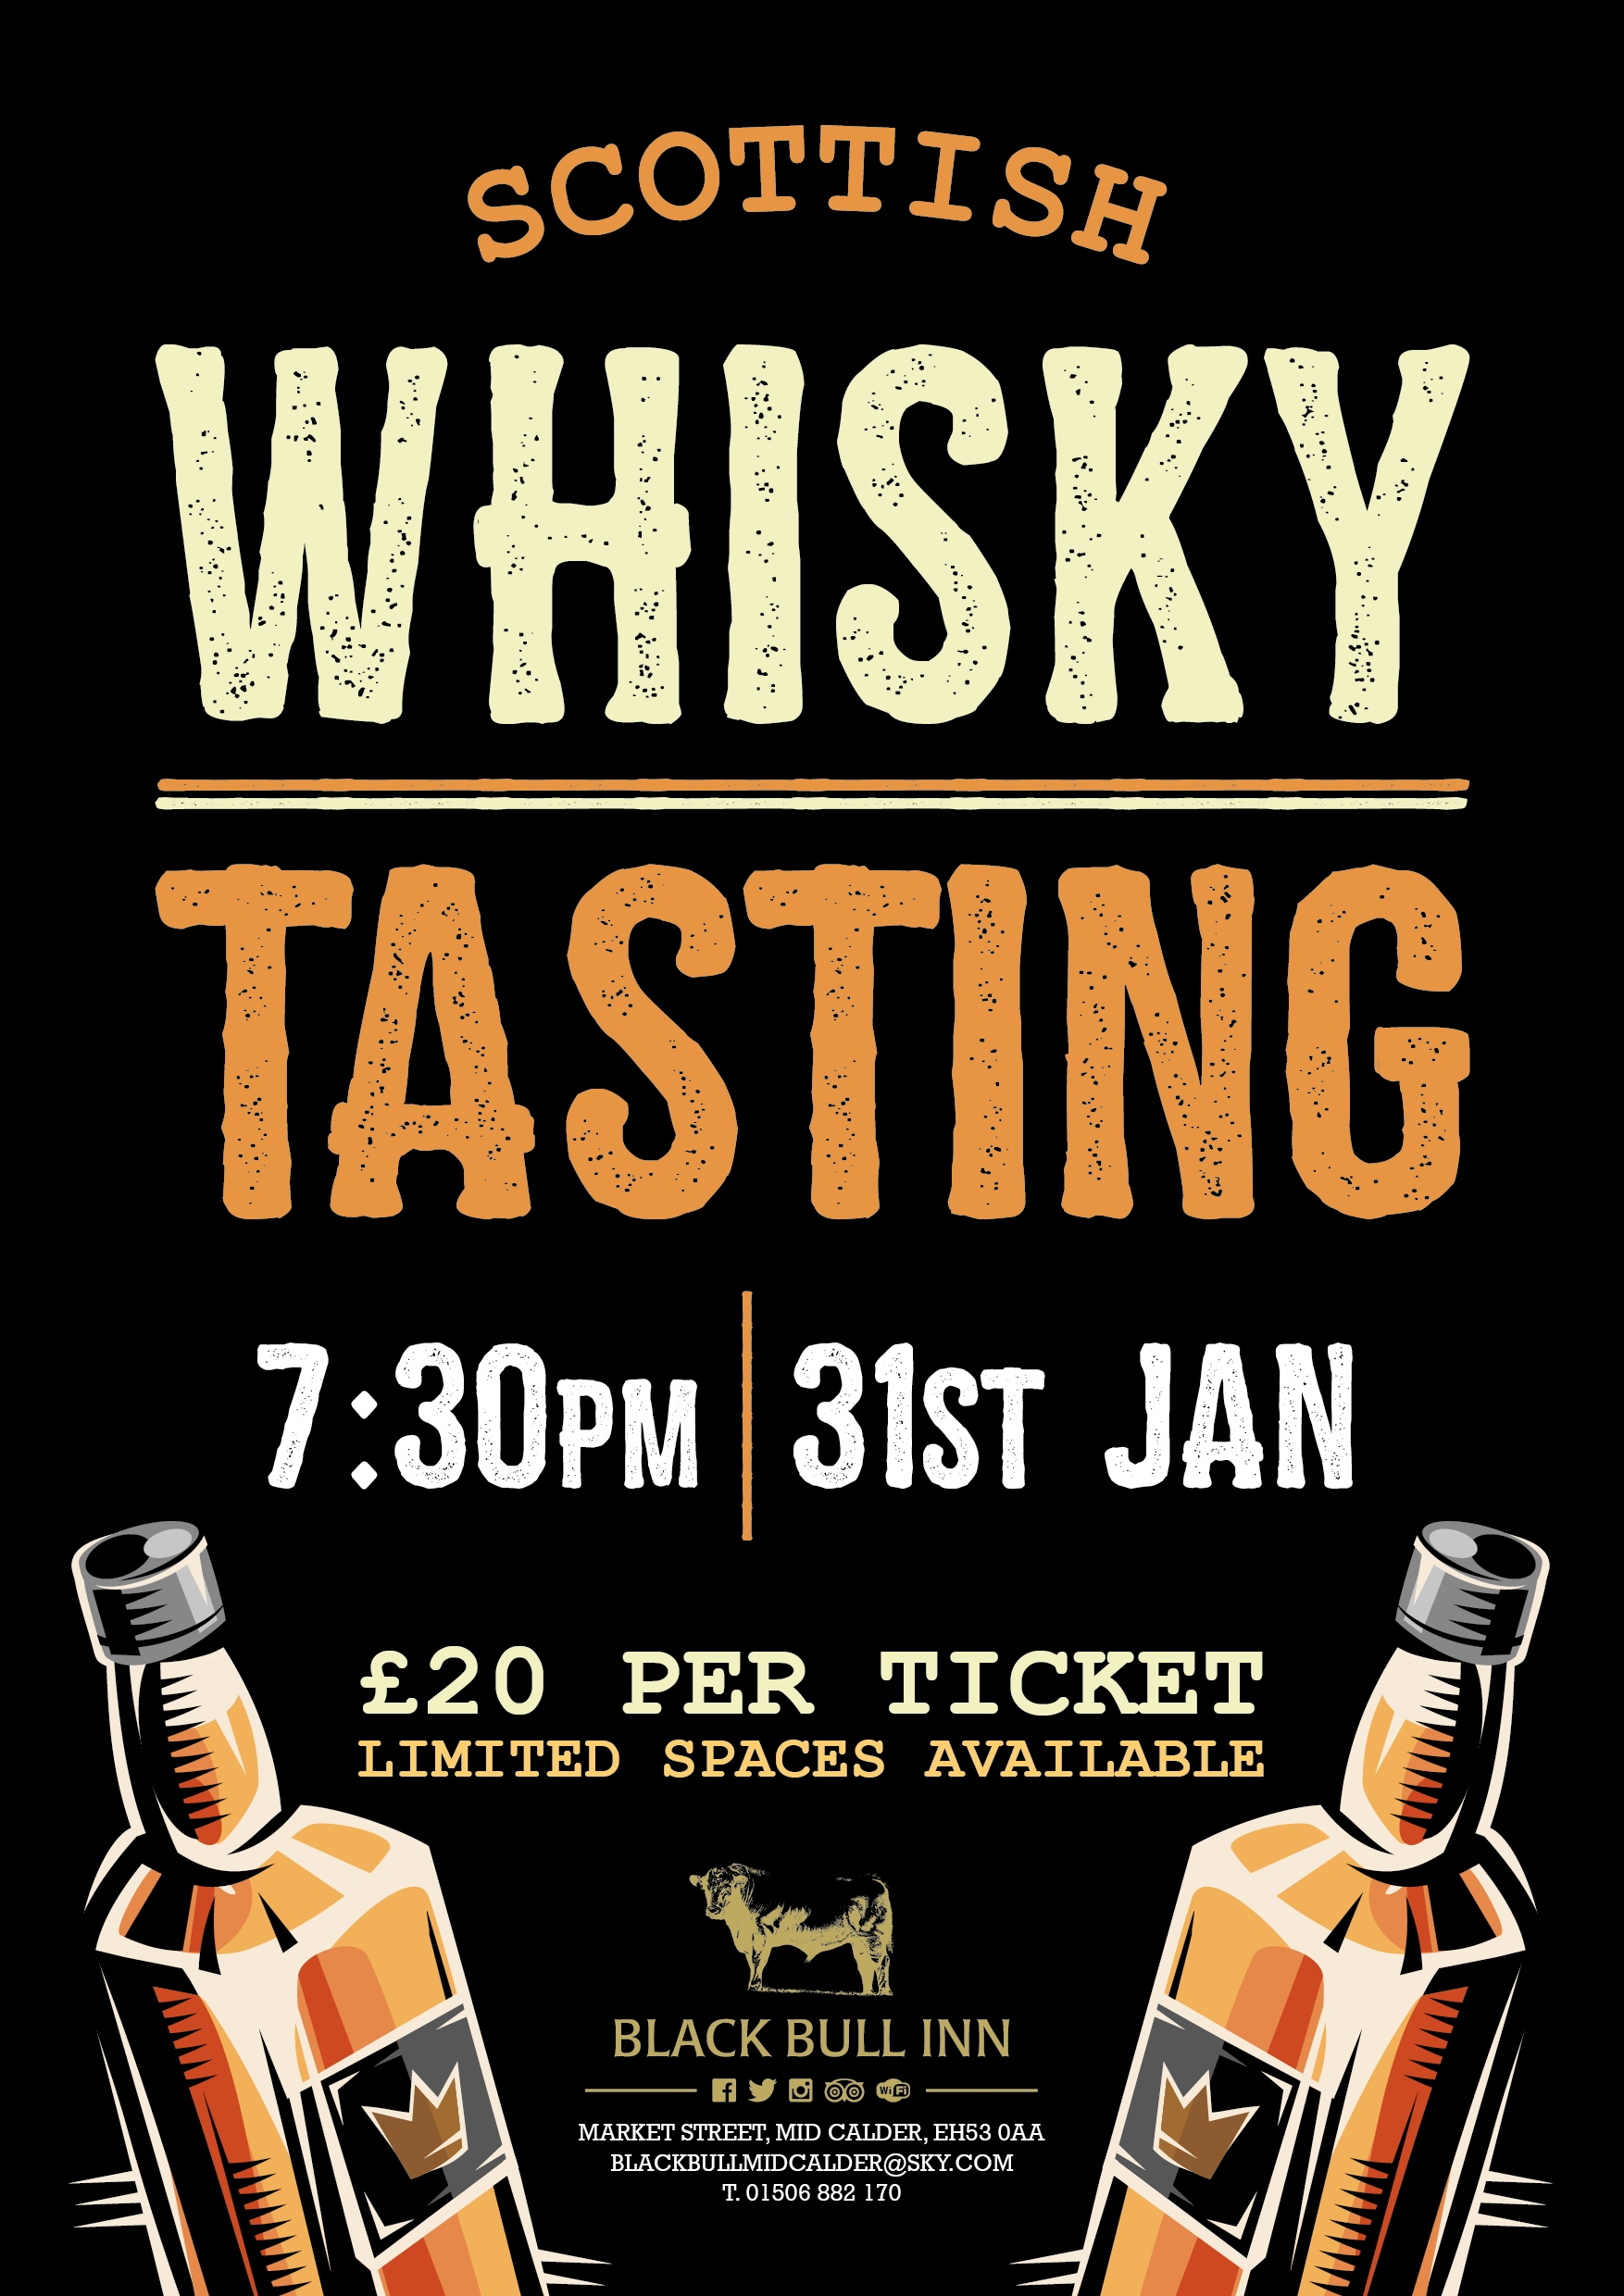 "<p><span style=""font-size: 18pt; color: #ff0000;"">Whisky Tasting 31st January 2018</span></p>"